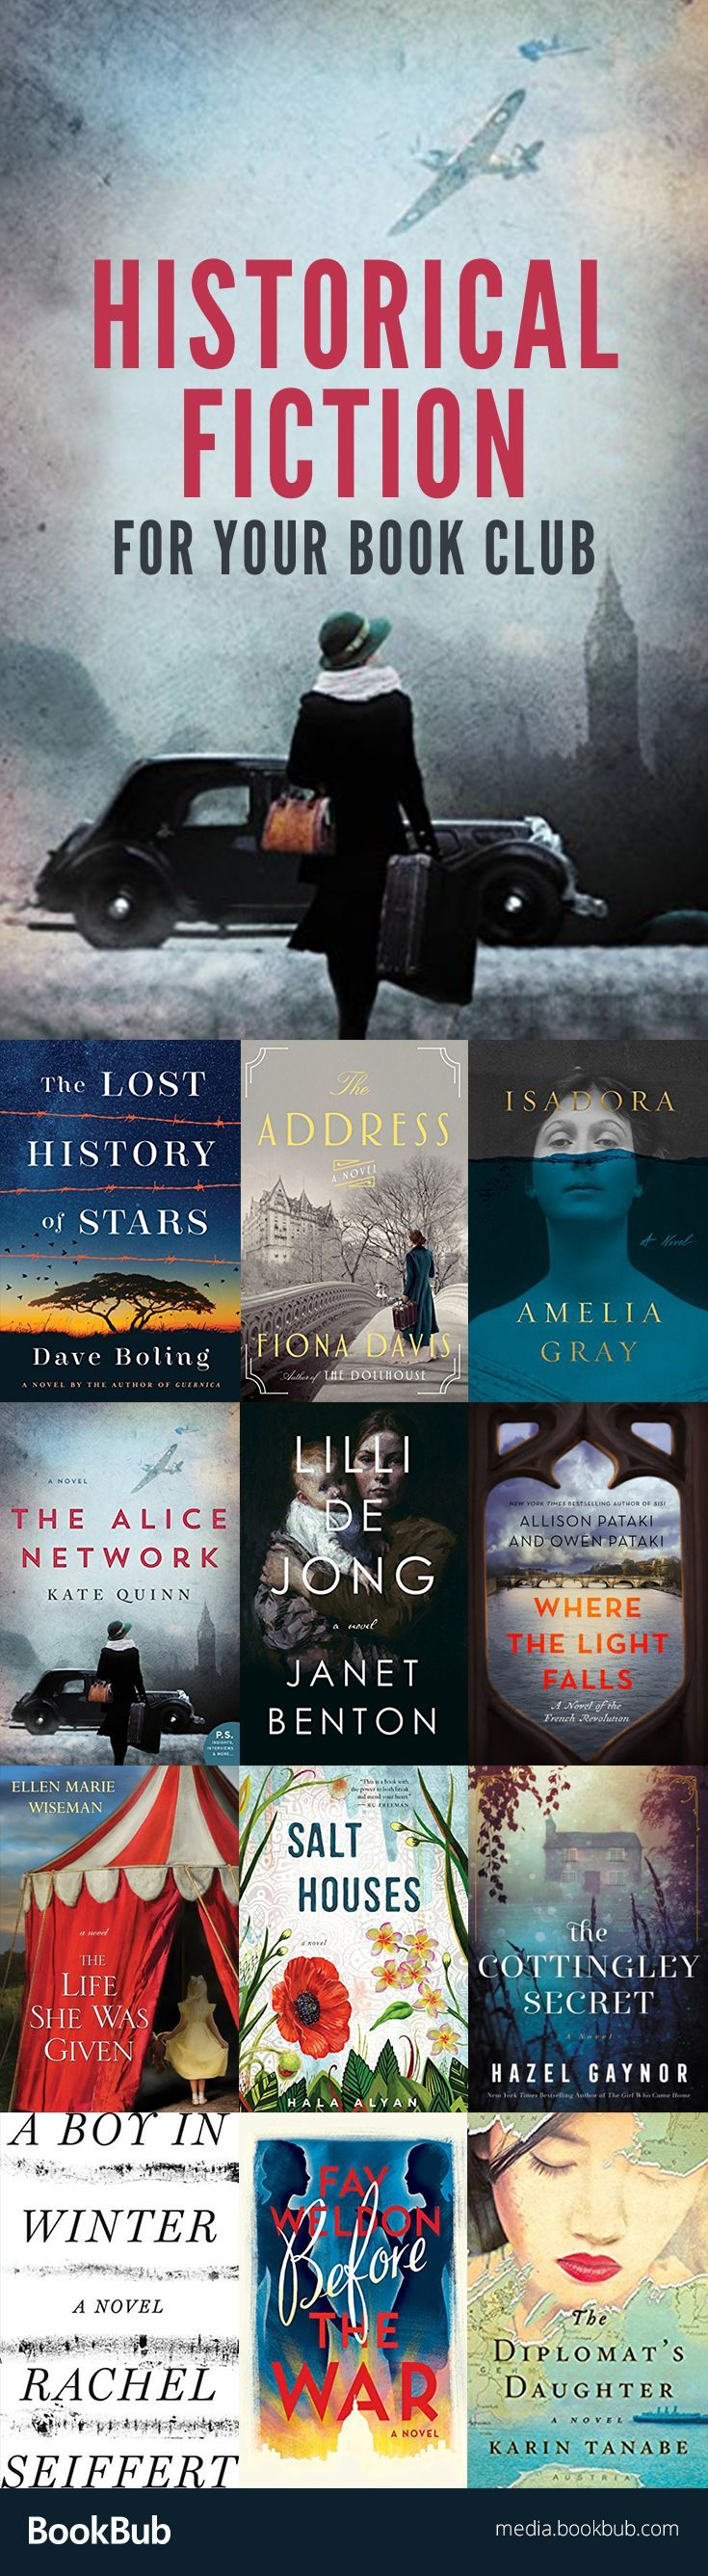 12 Historical Fiction Novels To Read With Your Book Club